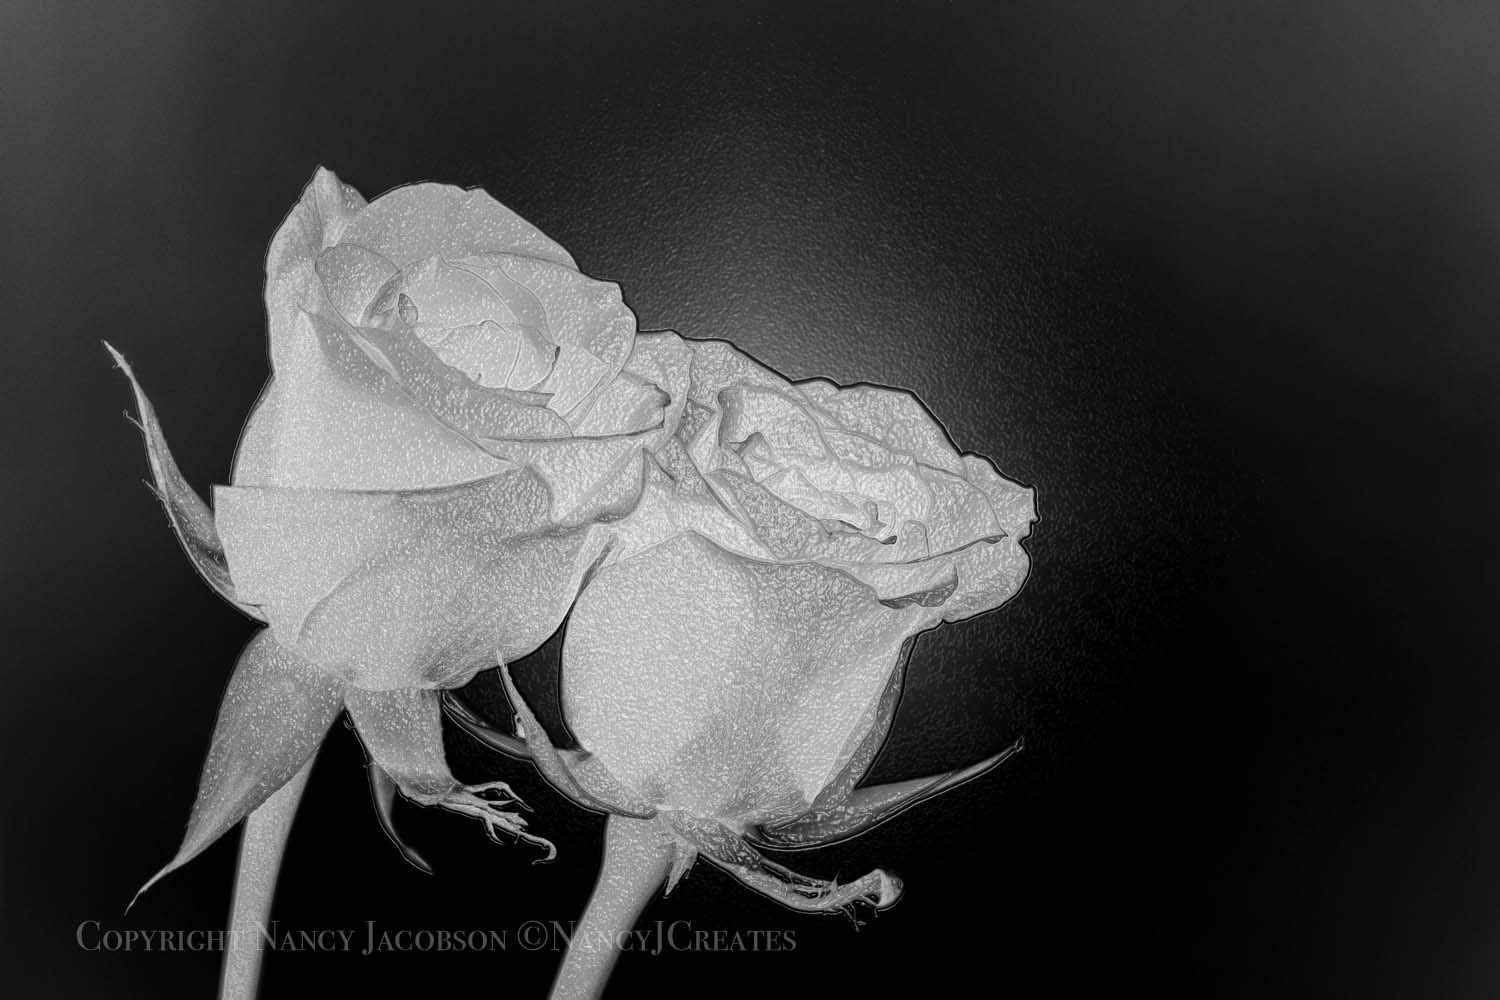 ebdf05c8a Two Roses Romantic Gift for Spouse Partner Wife Husband Unframed Rose Art  Floral Photography Digital Painting Flower Print Botanical Home Decor Grey  5x7 ...